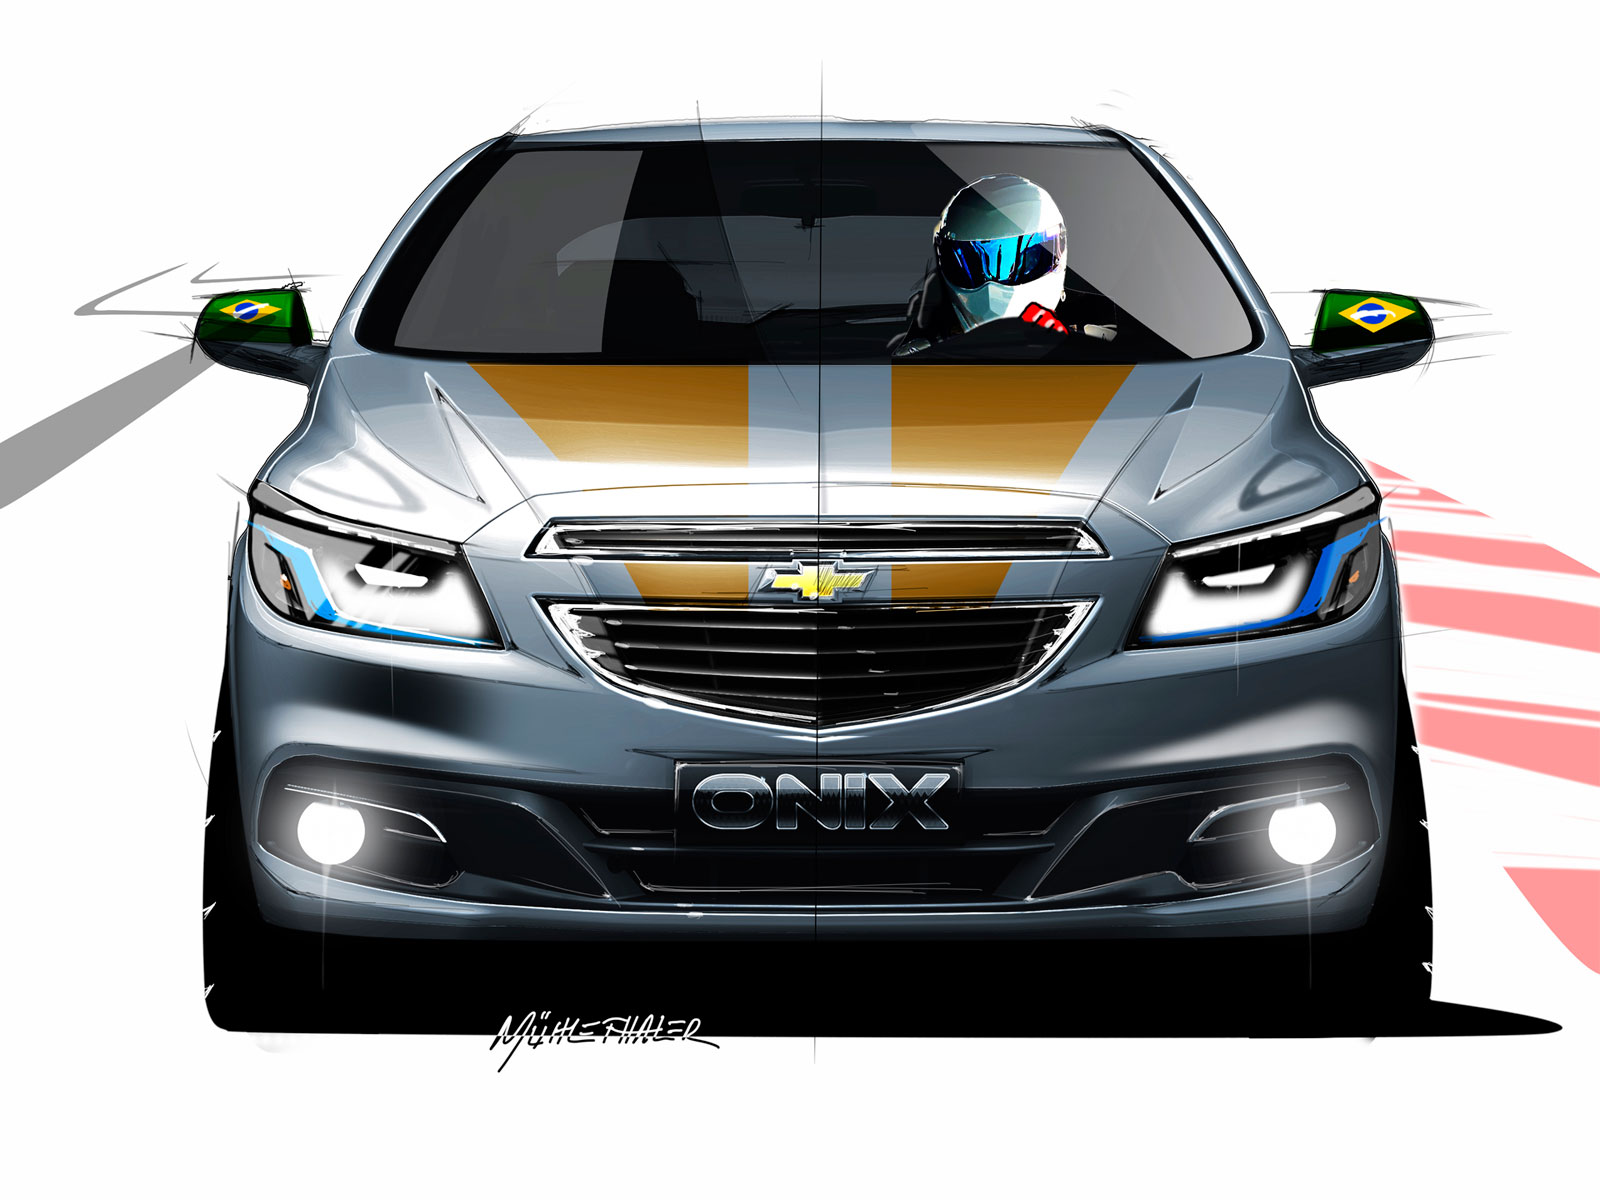 hight resolution of chevrolet onix design sketch